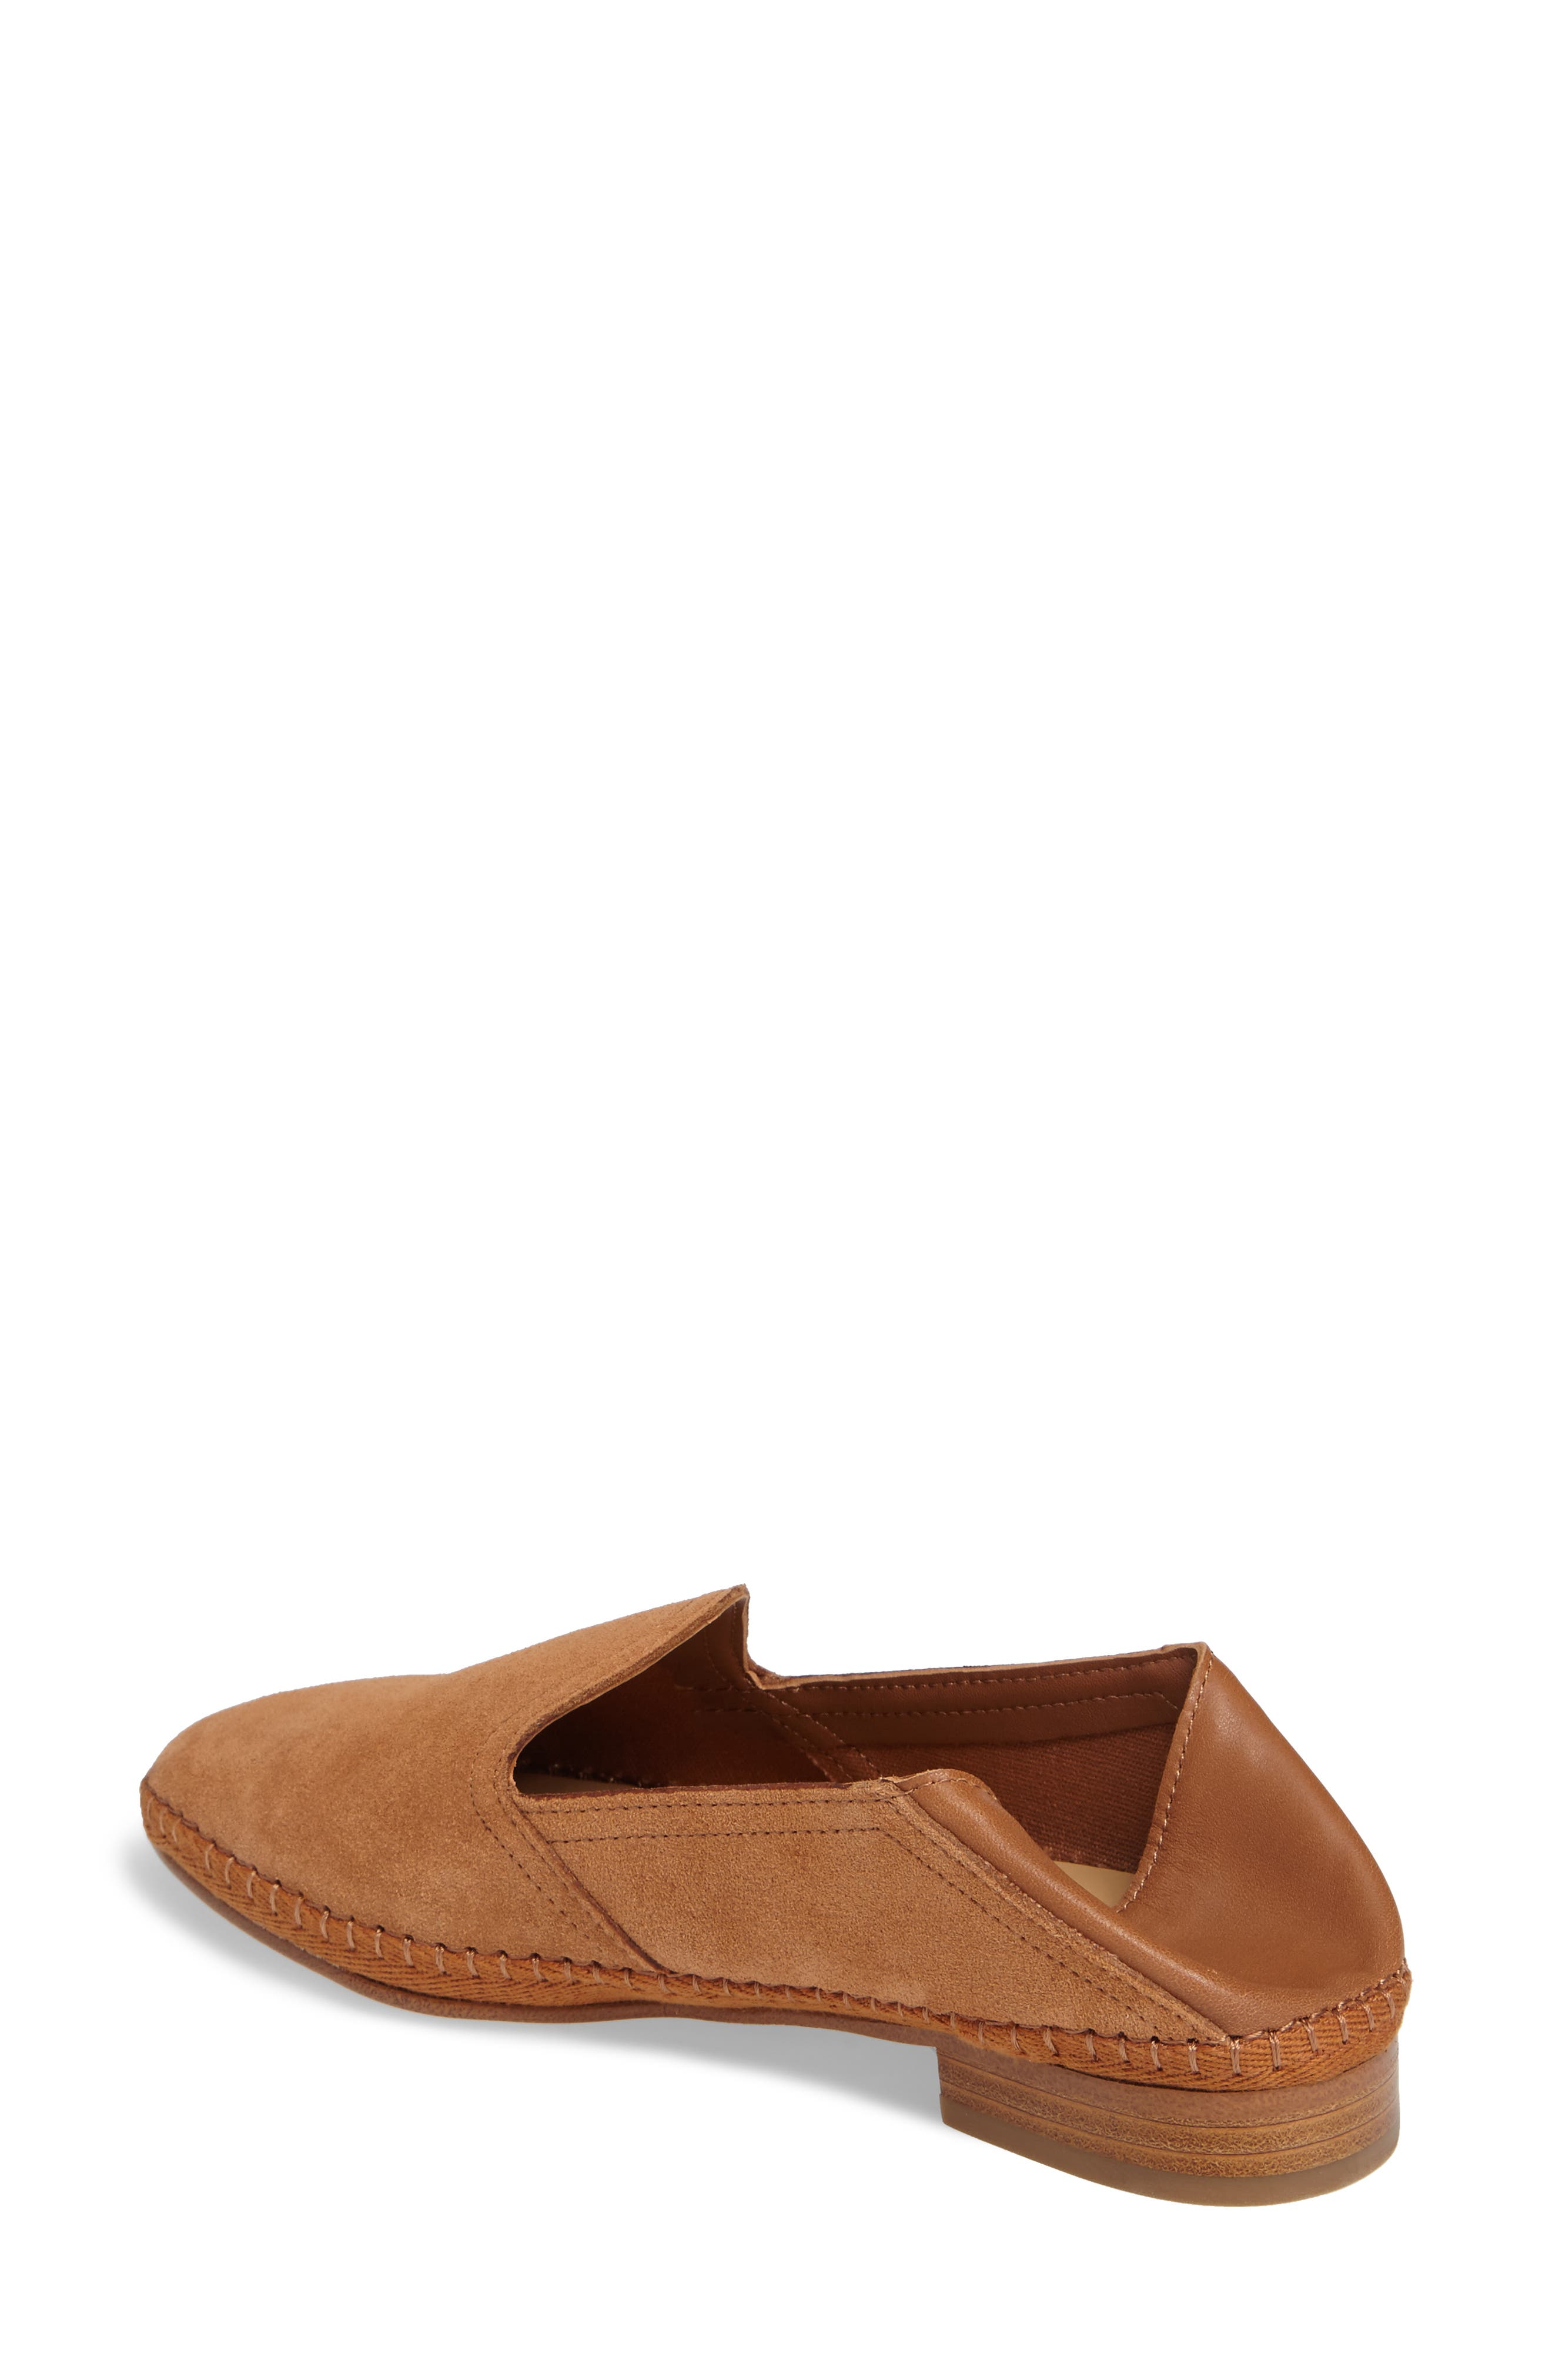 Alternate Image 2  - Soludus Convertible Venetian Loafer (Women)